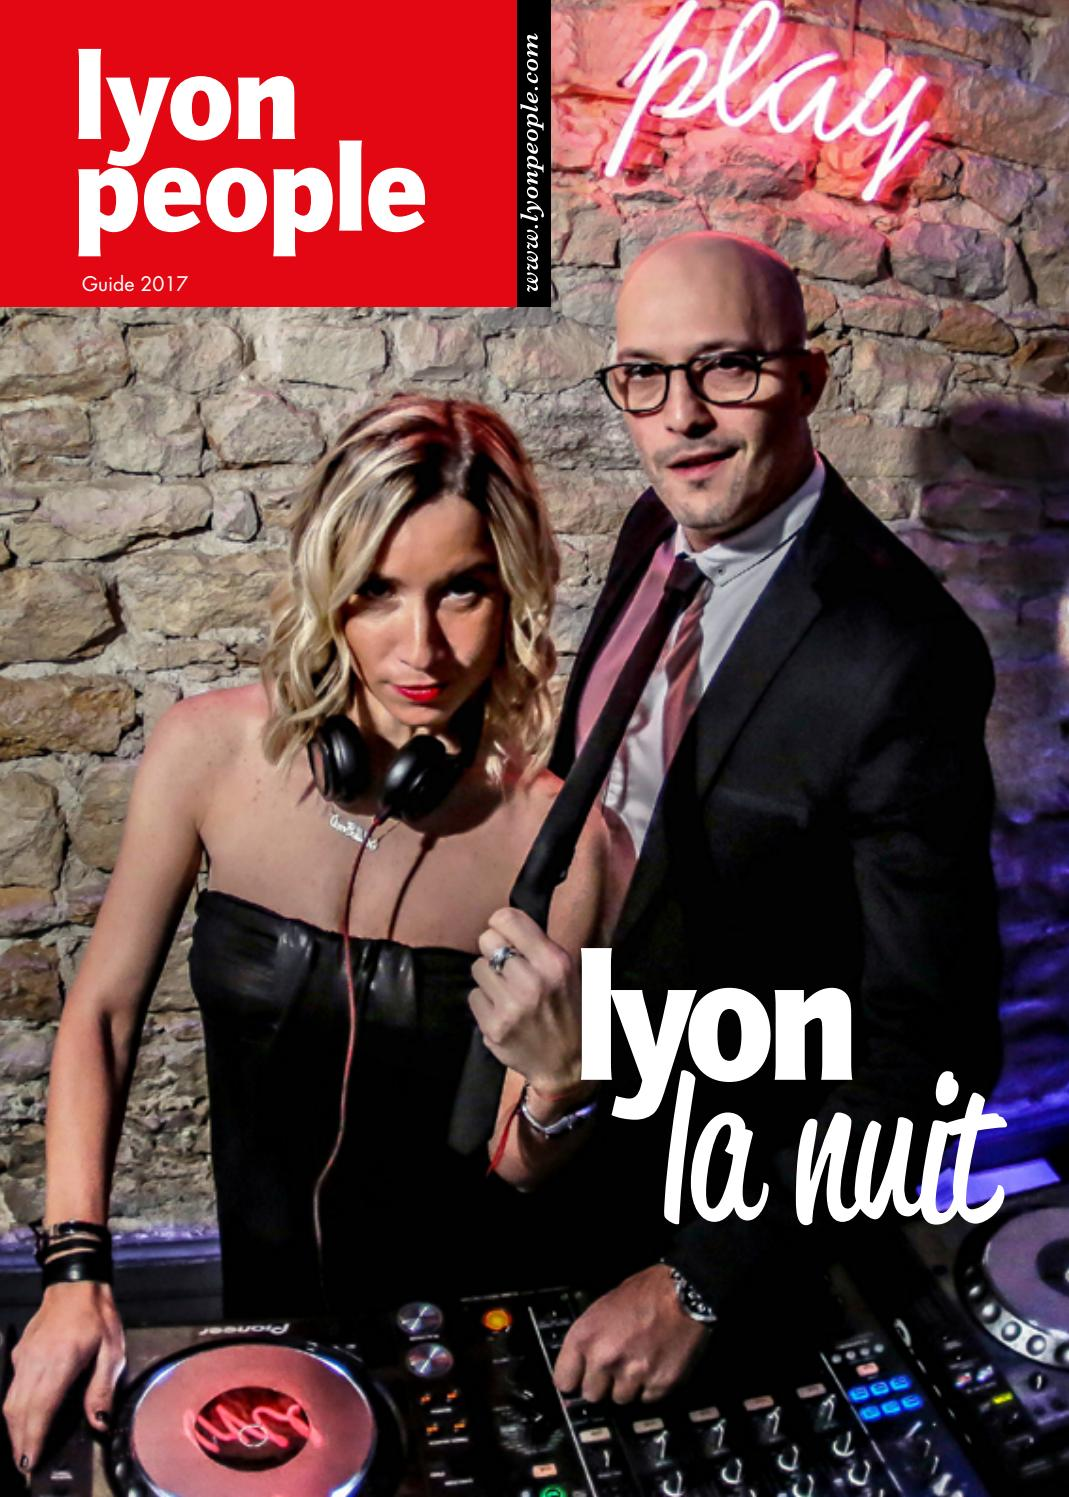 Salon Erotisme Lyon Guide De La Nuit 2017 By Lyon People Issuu